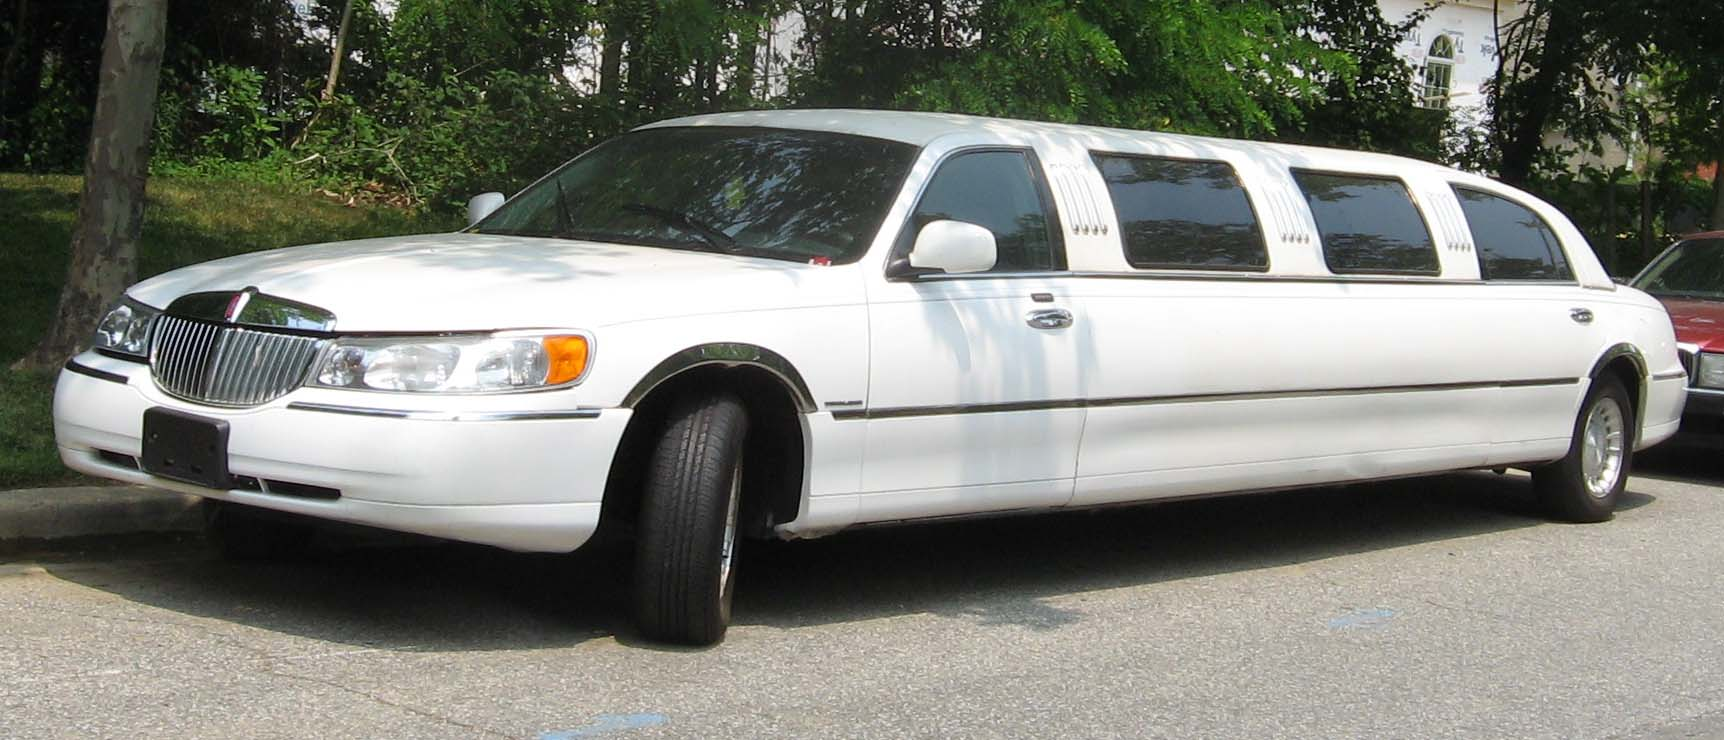 File 98 02 Lincoln Town Car Limousine Jpg Wikimedia Commons